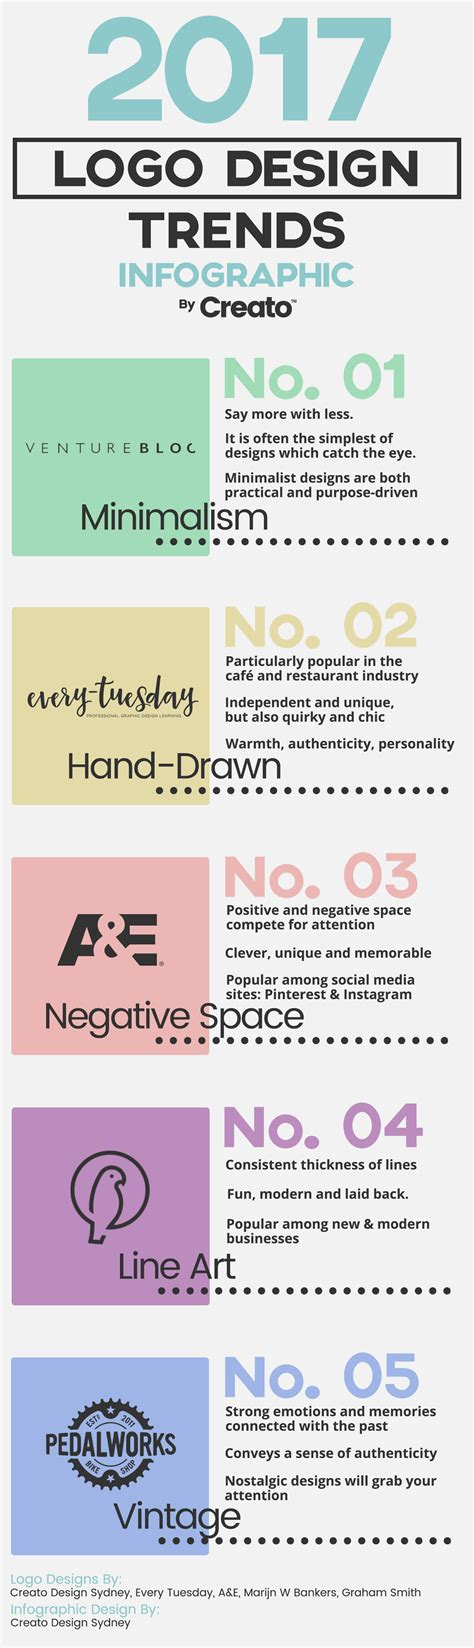 2017 graphic design trends 2017 logo design trends with infographic blog